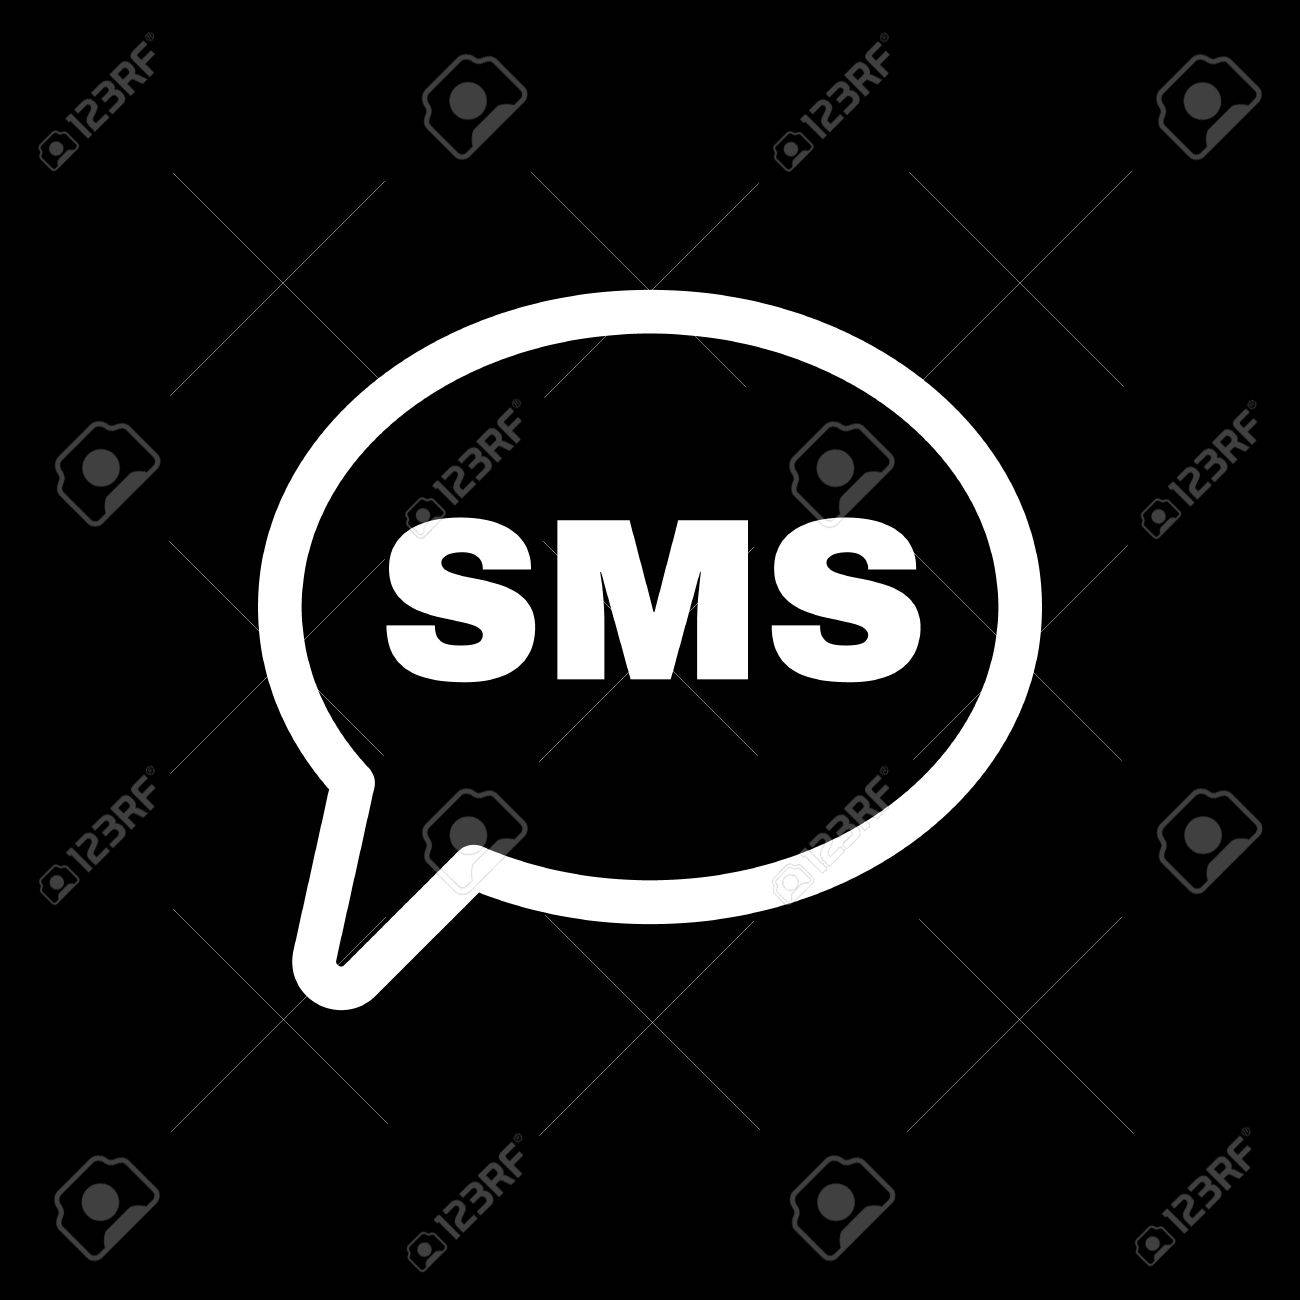 Text message symbol pictures fieldstation text message symbol pictures buycottarizona